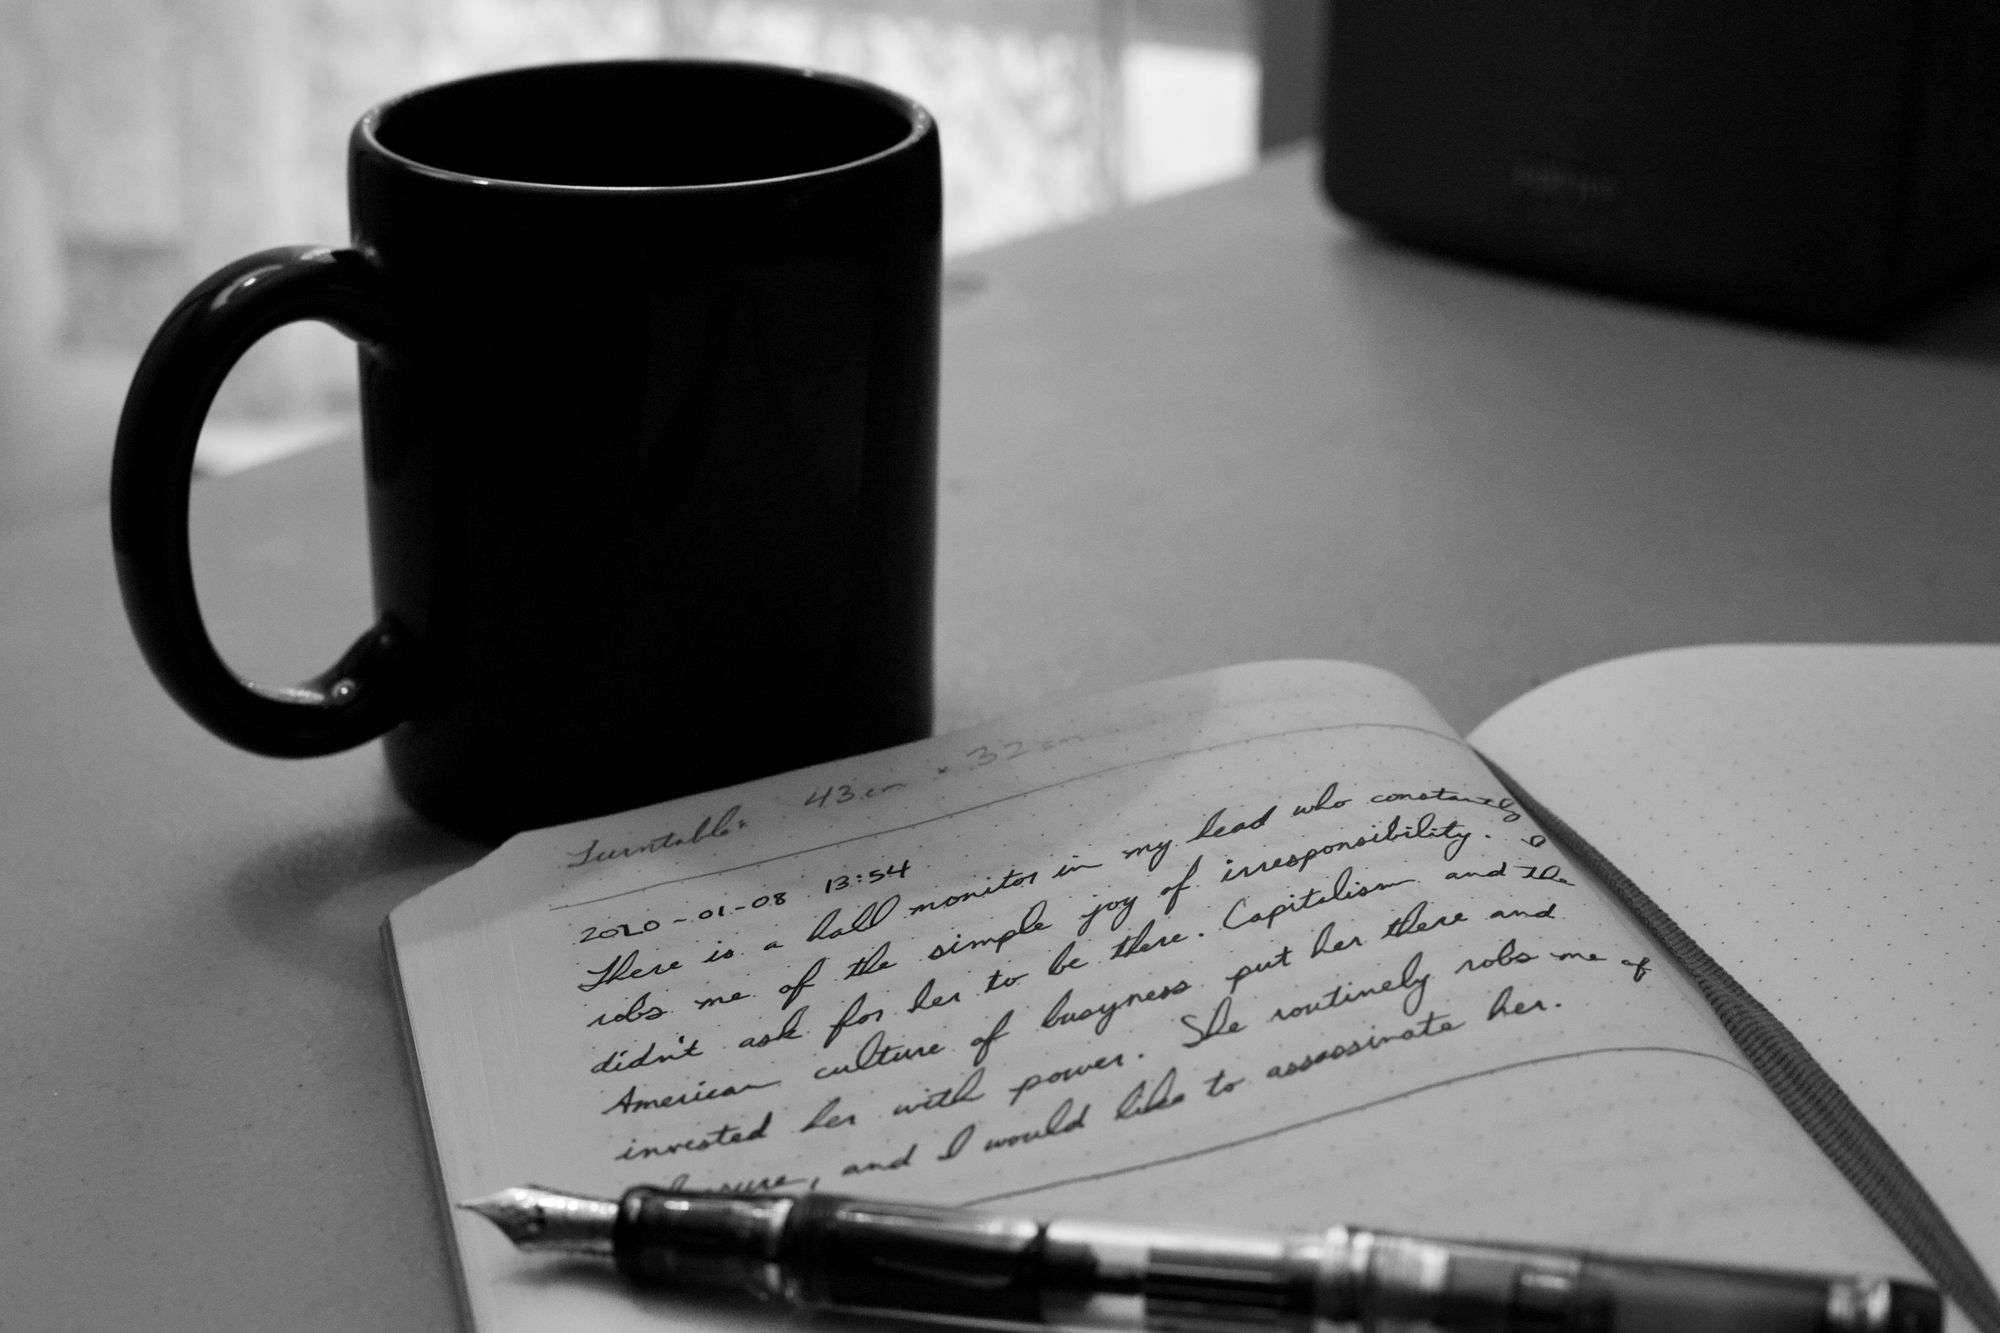 Notebook with cursive handwriting, a fountain pen, and a coffee mug